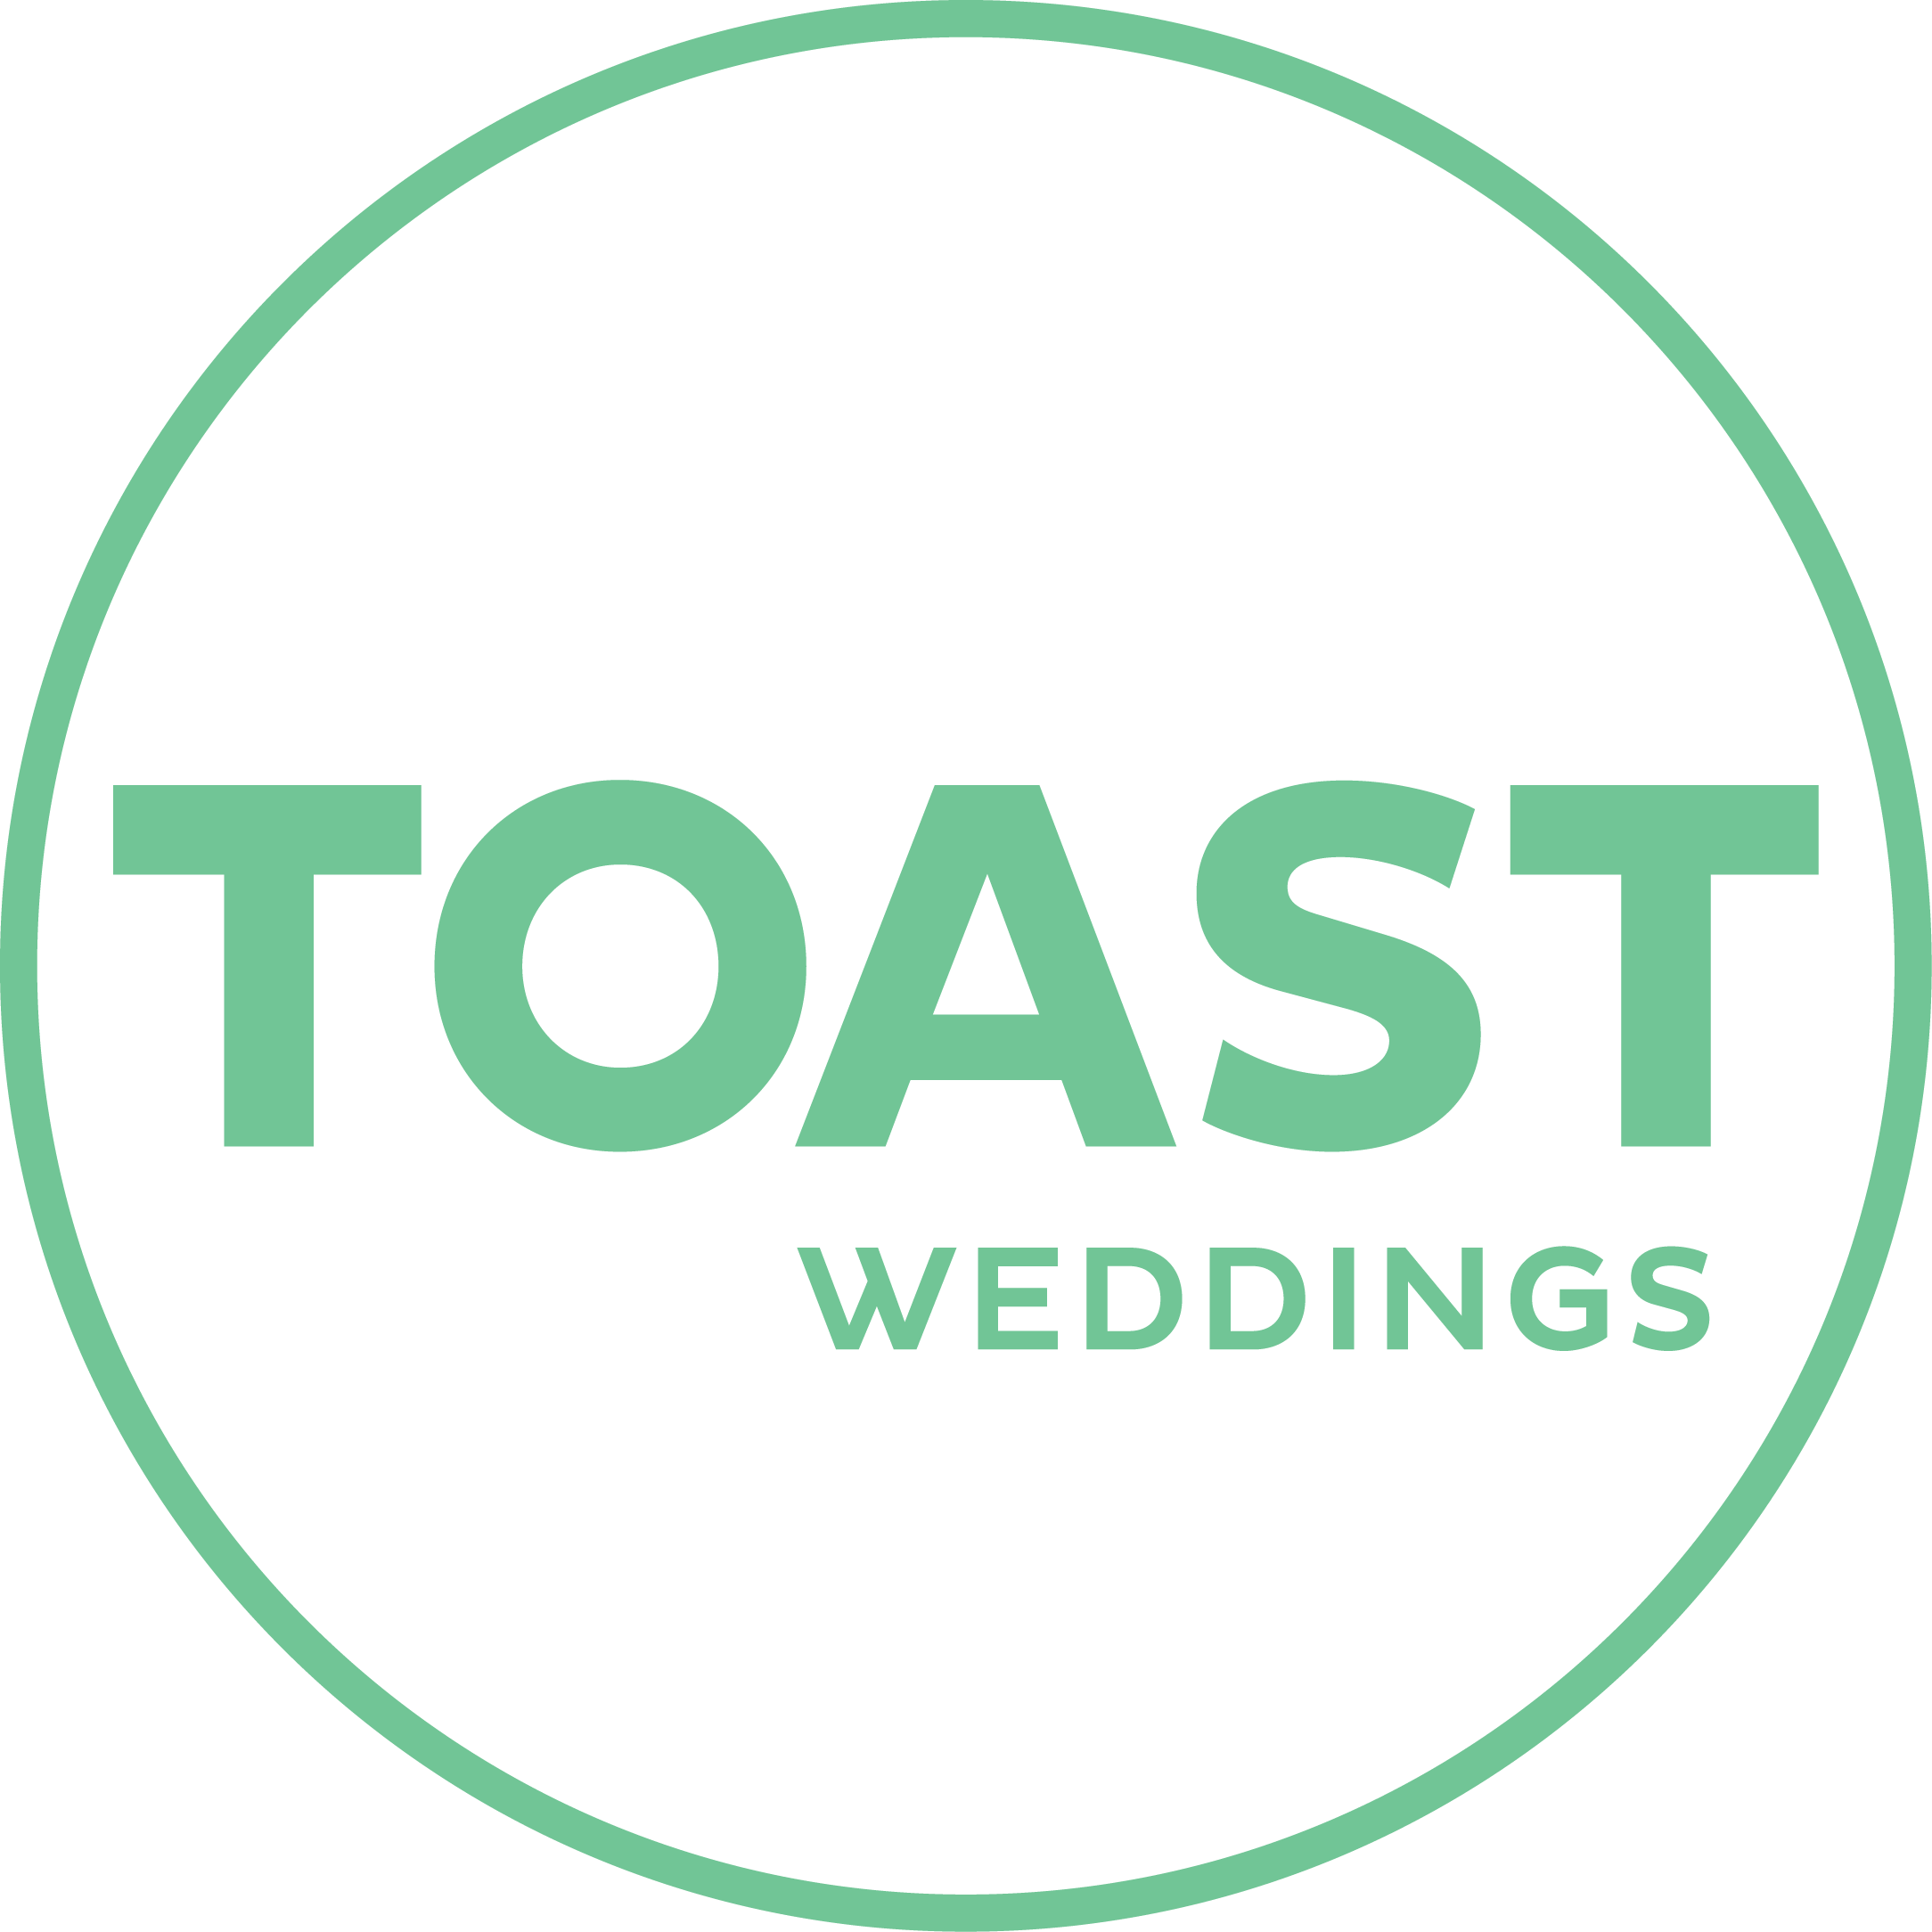 Toast Weddings